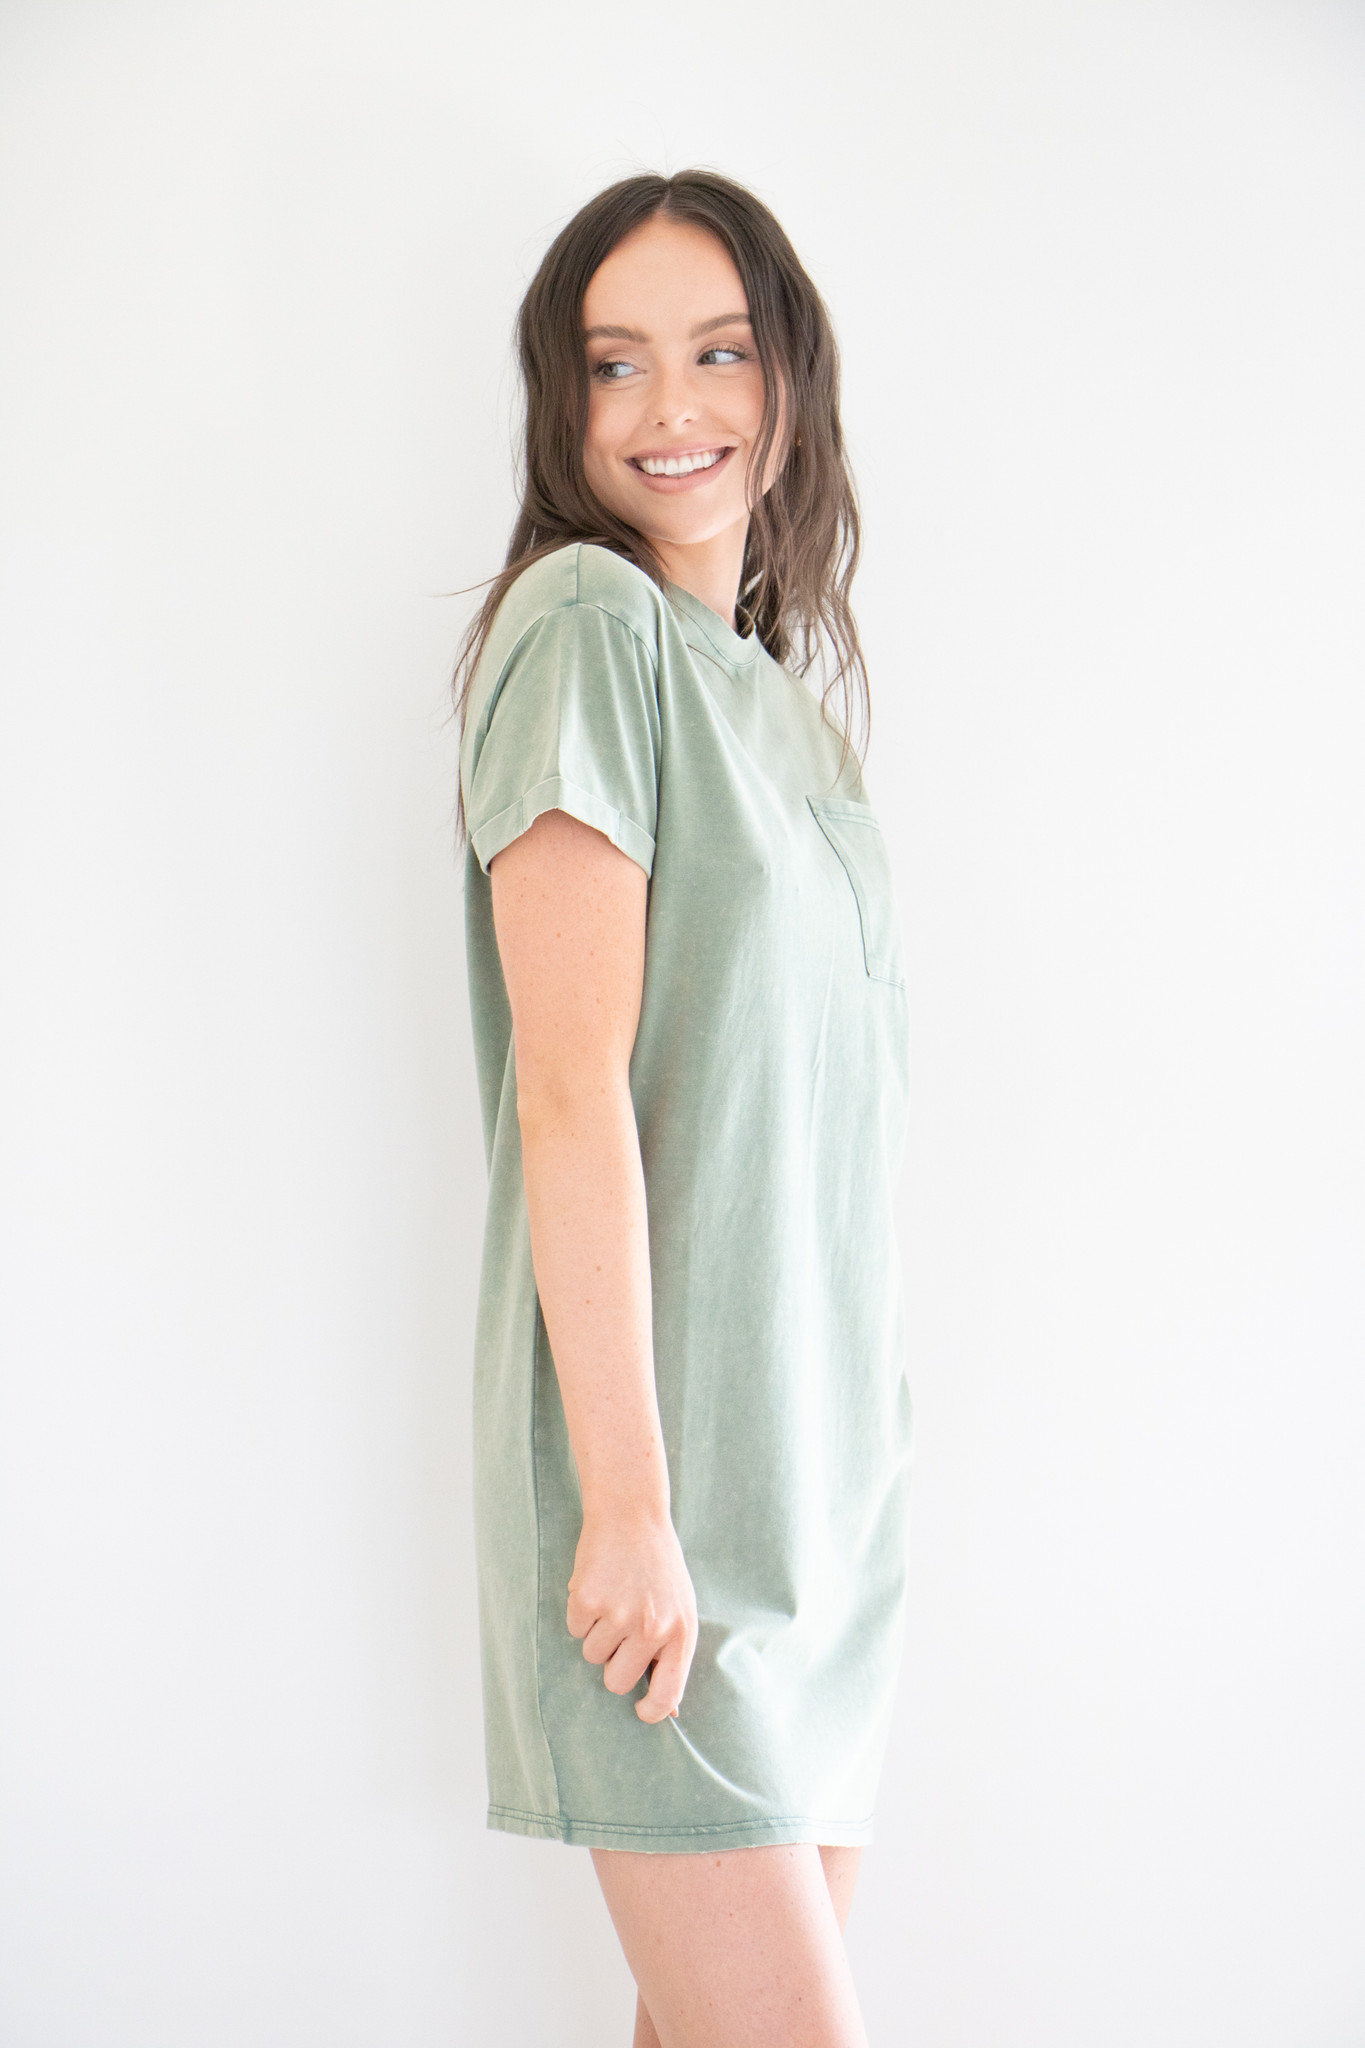 Milly Mineral Washed Tee Dress in Mineral Green